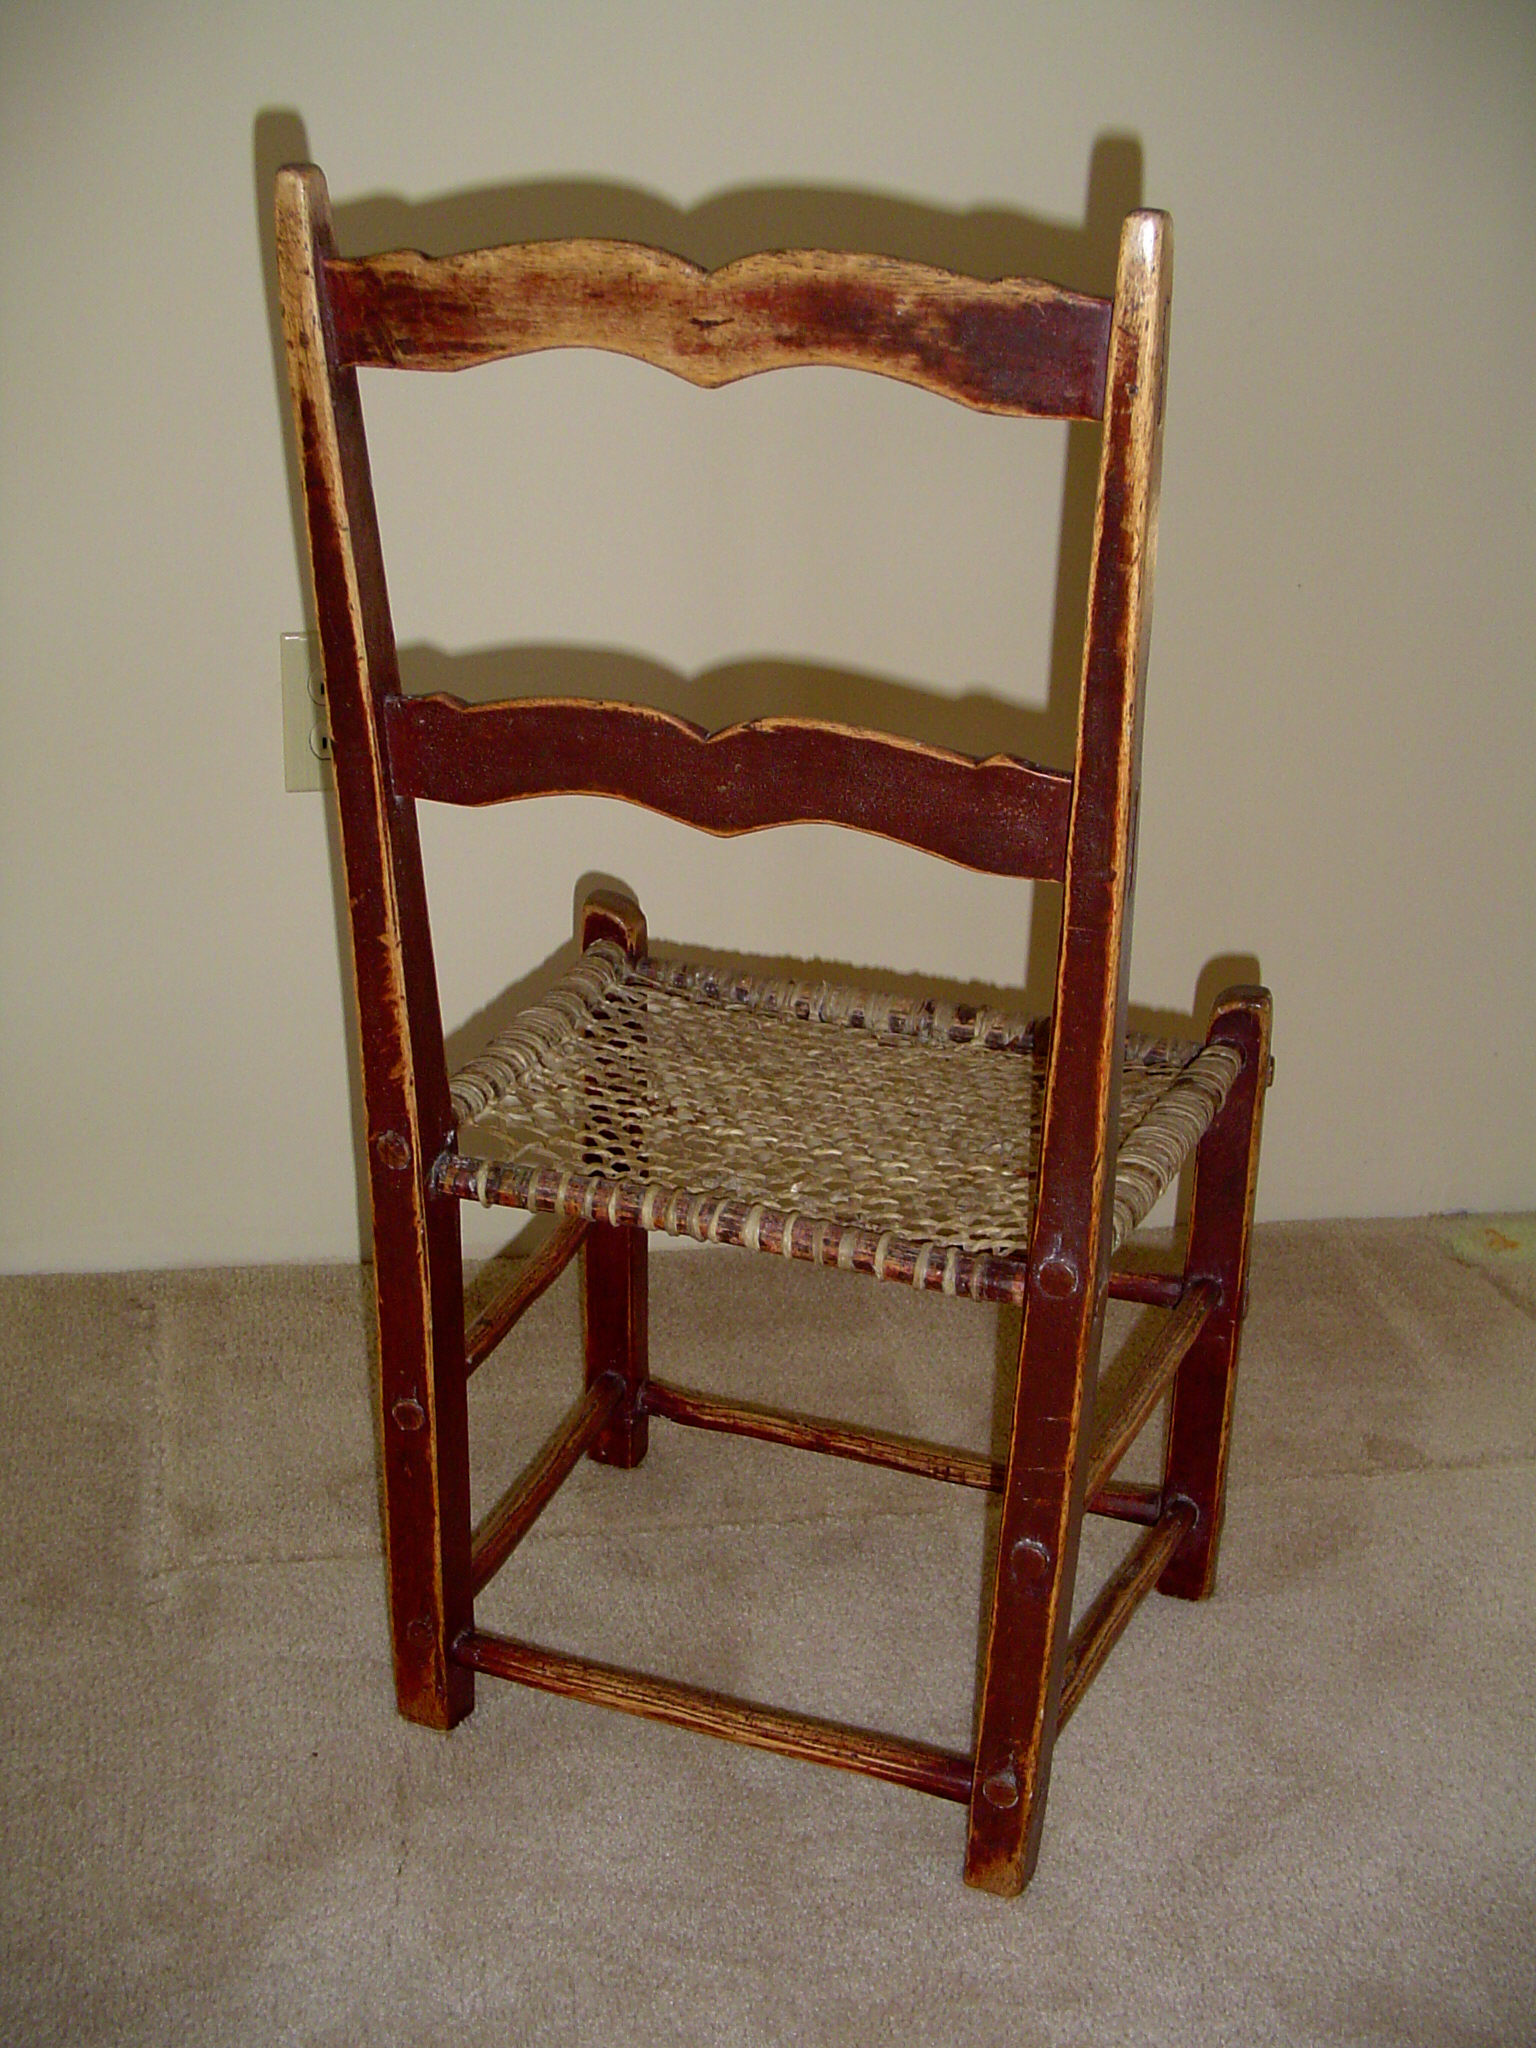 wood chairs for sale chair and a half sleeper sofa set of primitive in the capucine manner canadian